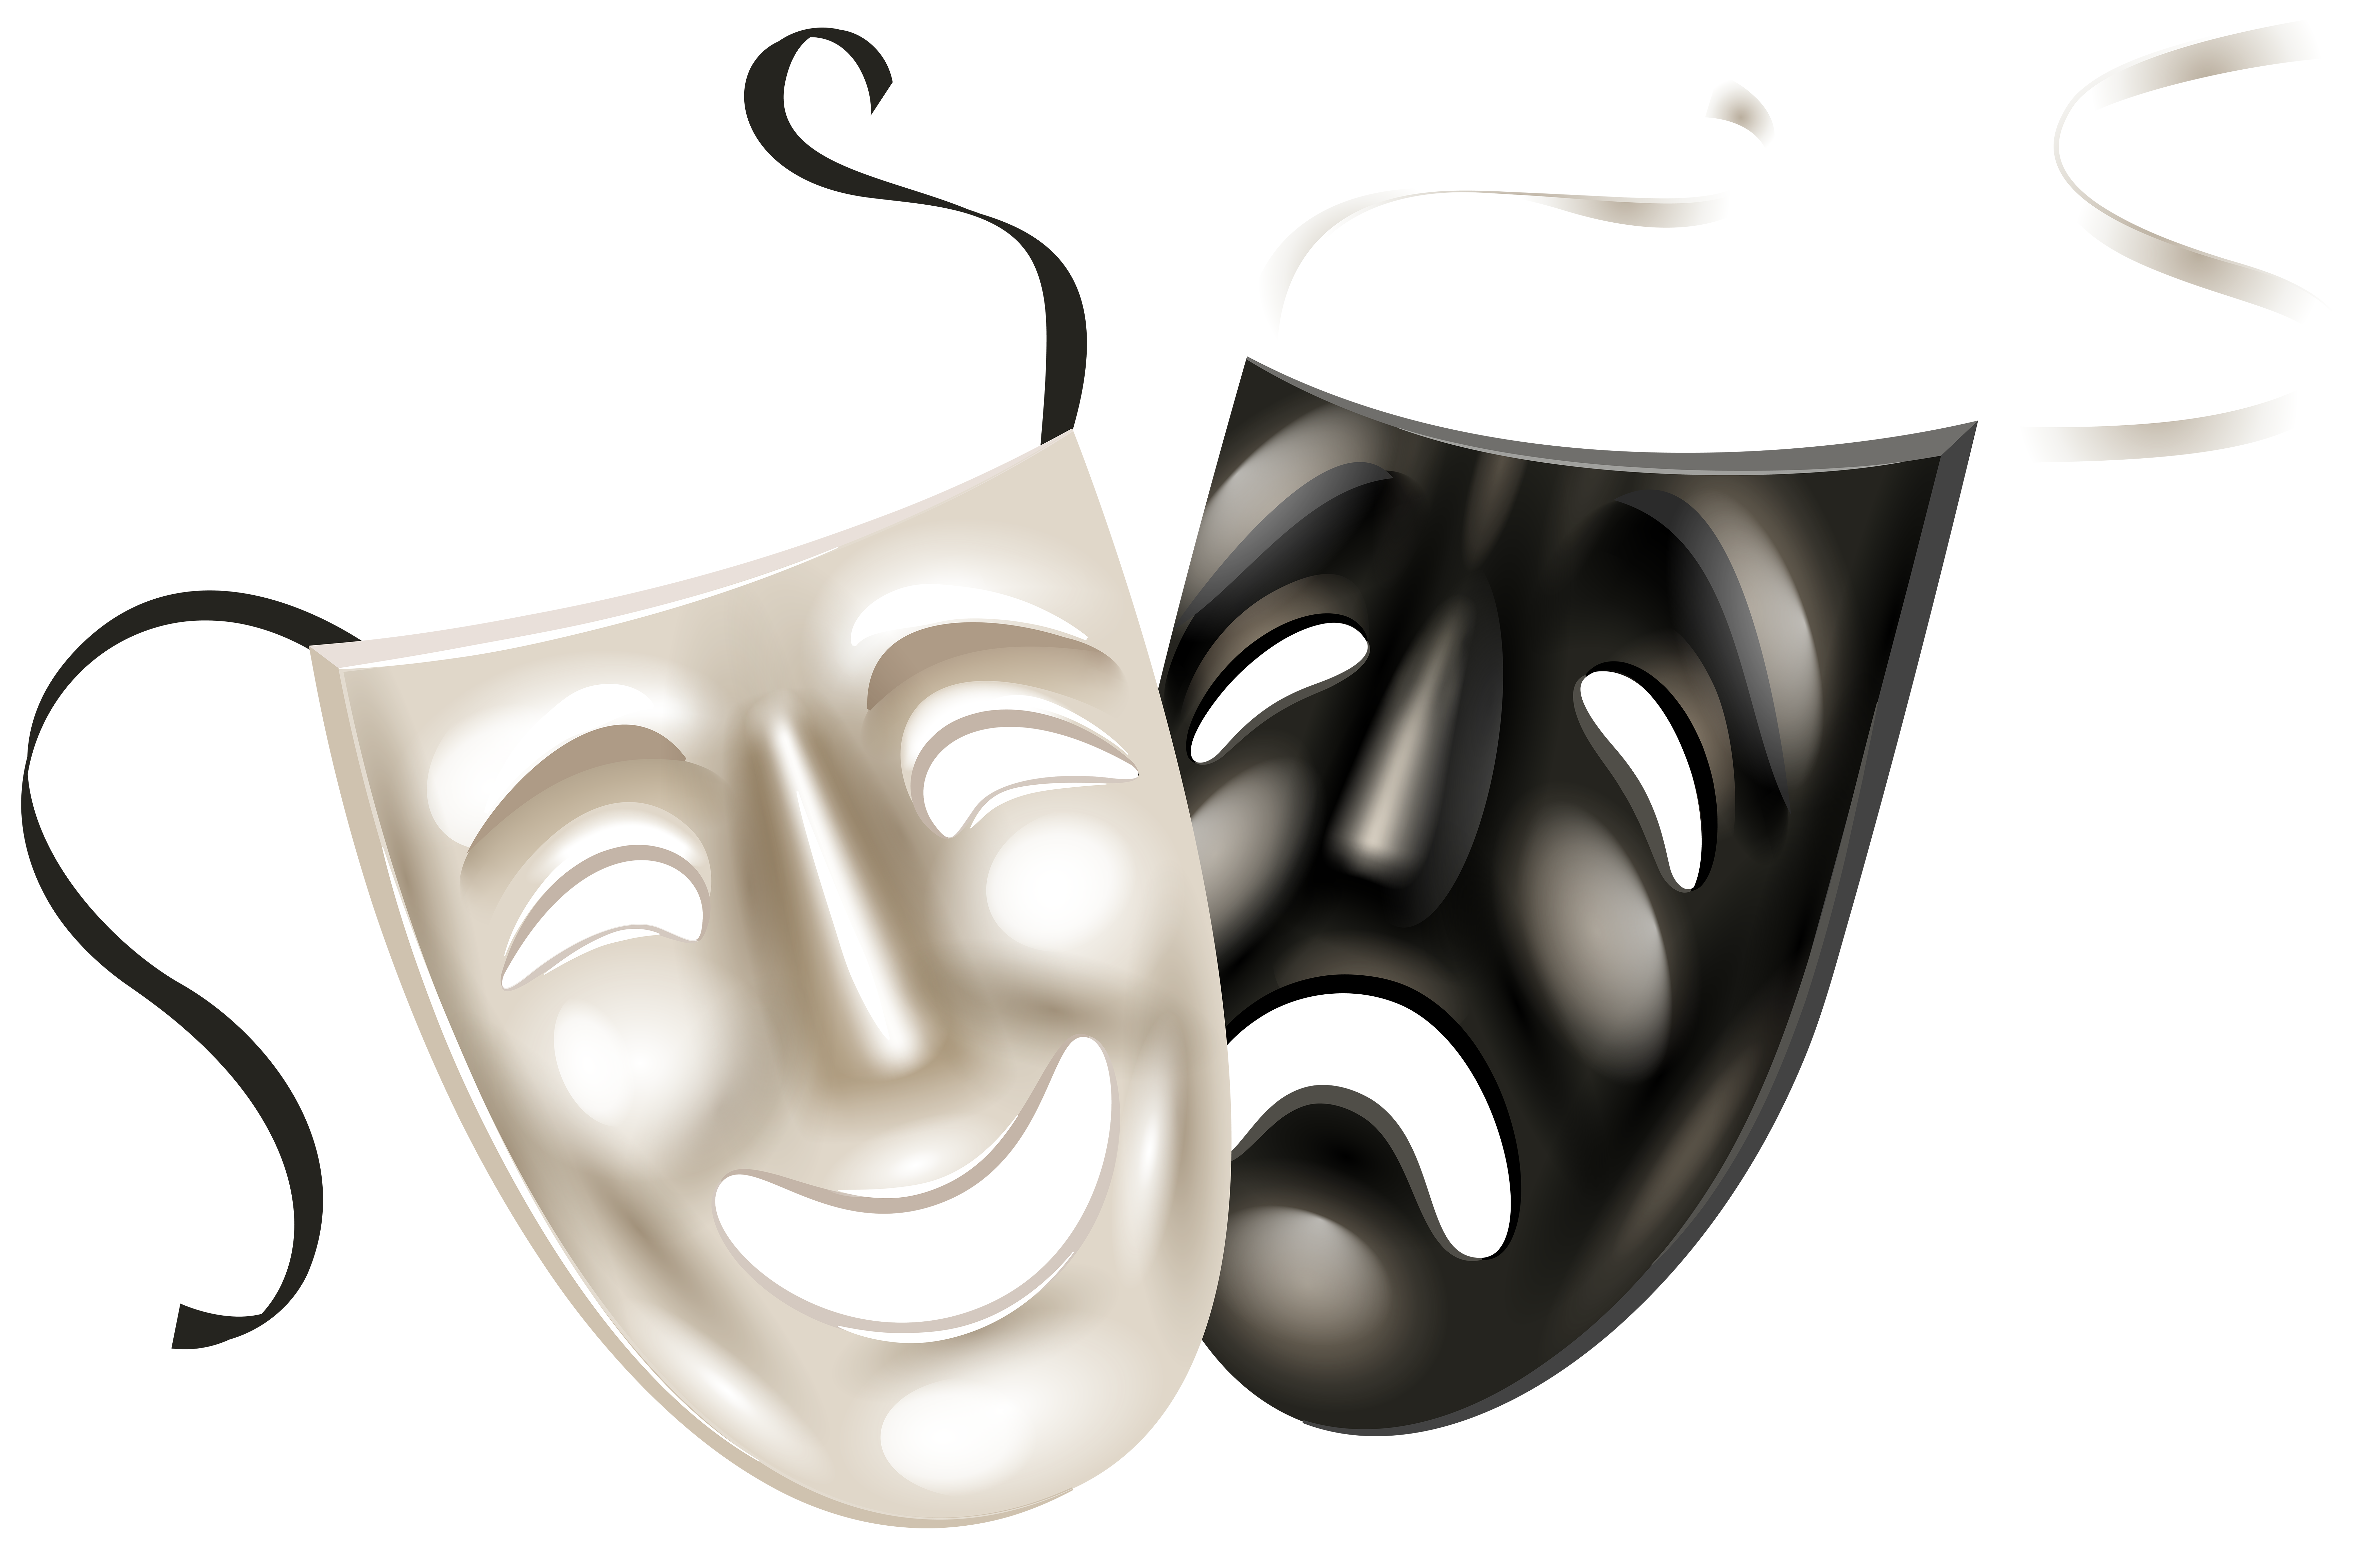 Theater masks clip art. Drama mask png banner black and white download